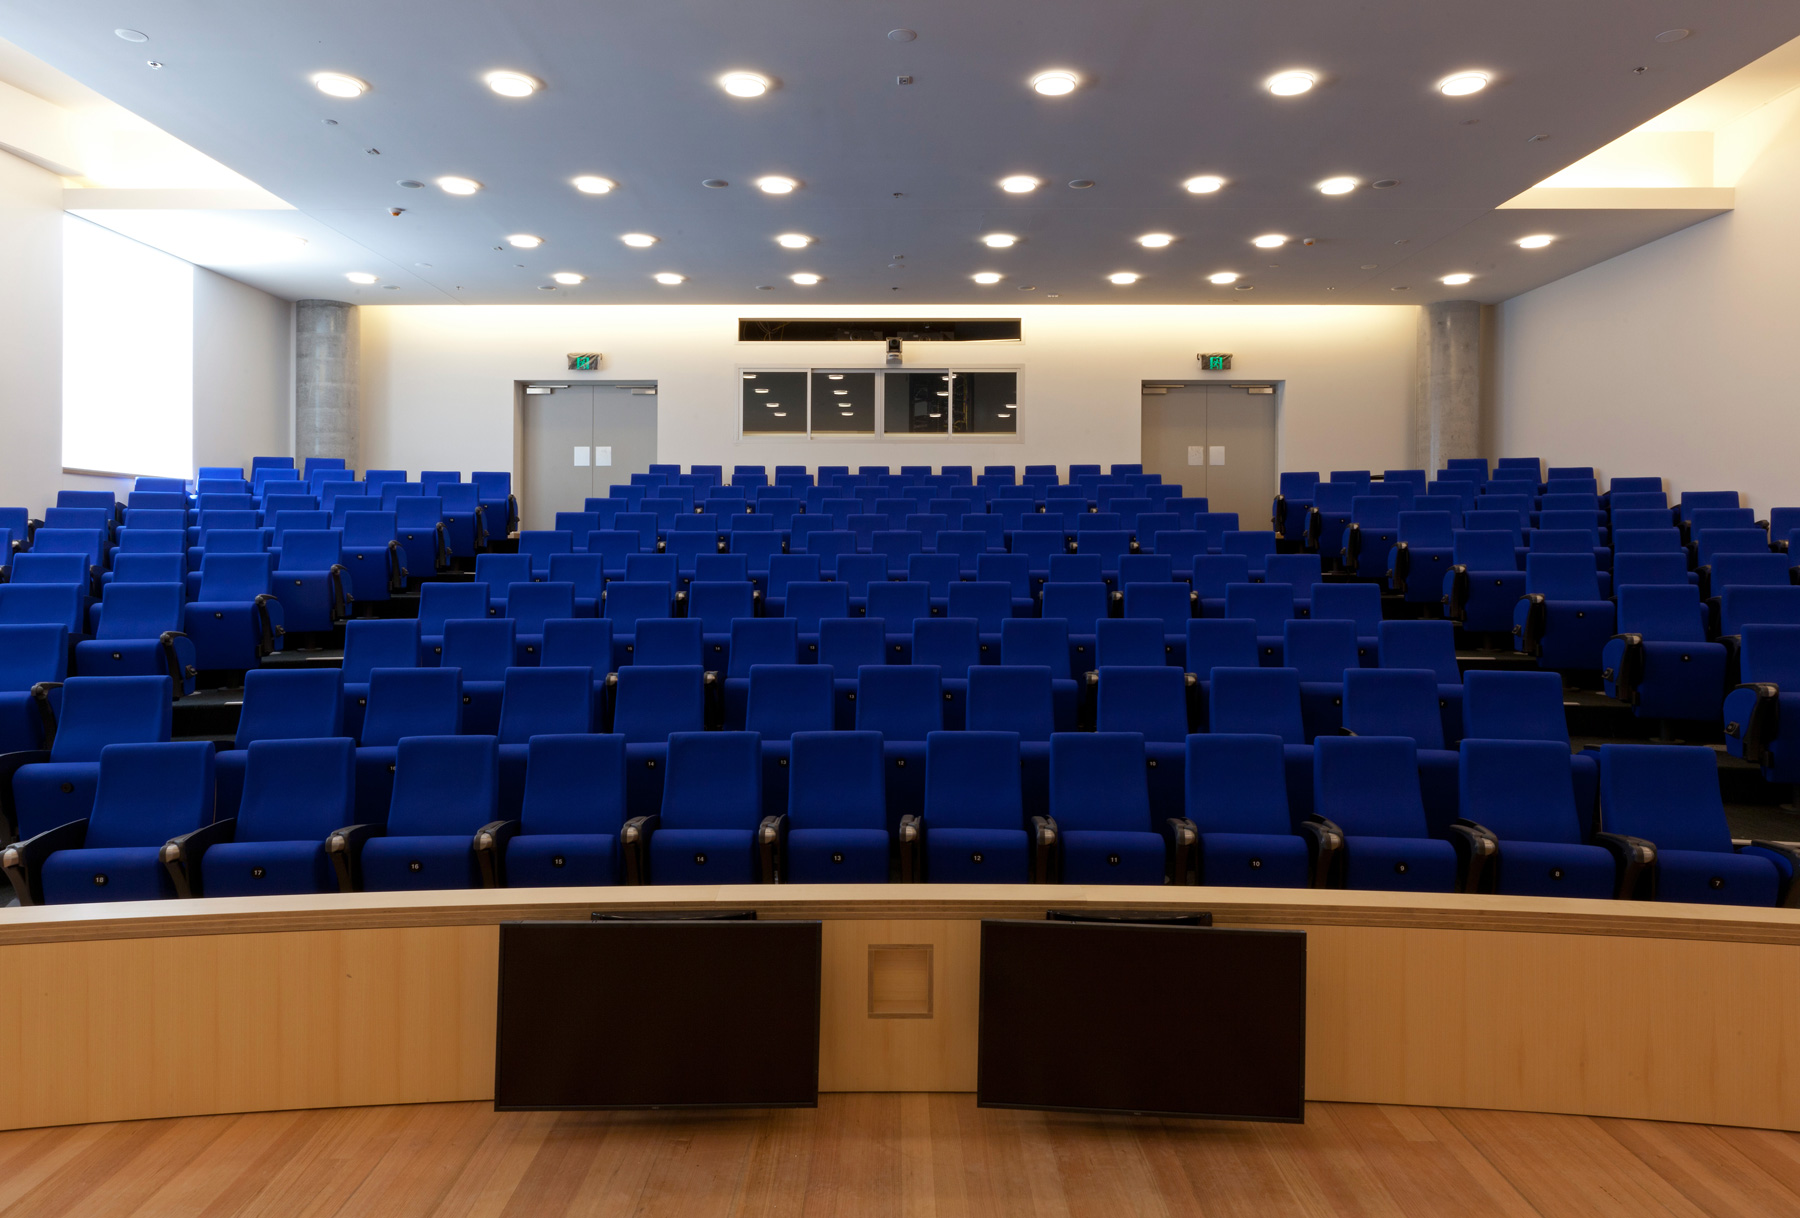 evel 2 Auditorium, the largest space in the building, seating up to 240 people. It will not be used for teaching and learning, but for presentations, ceremonies and conferences.